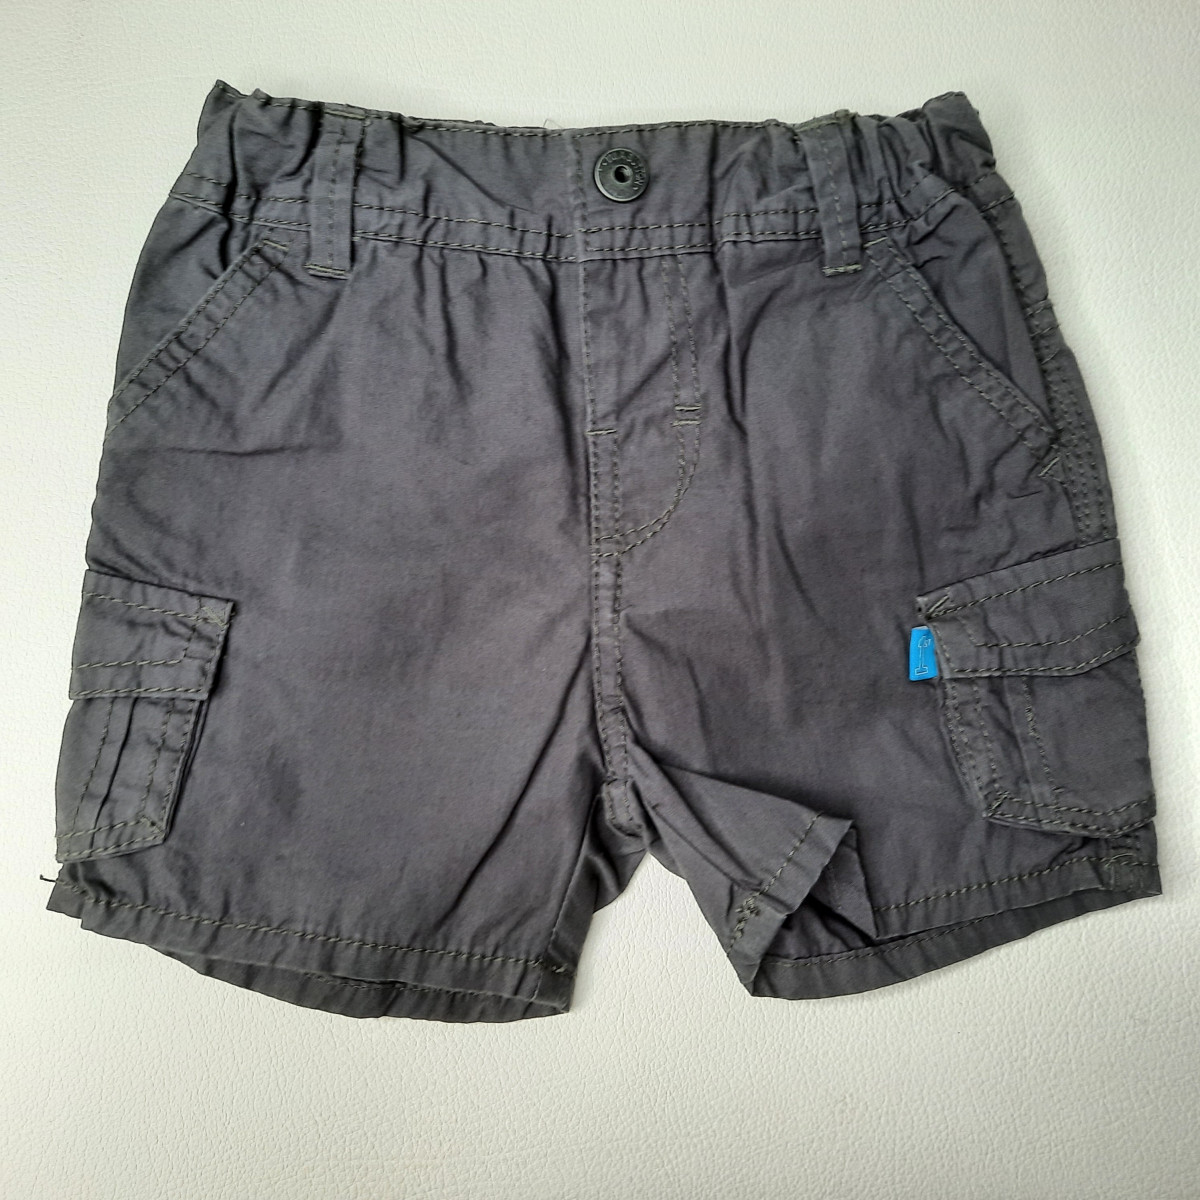 Shorts, Bermudas - photo 27